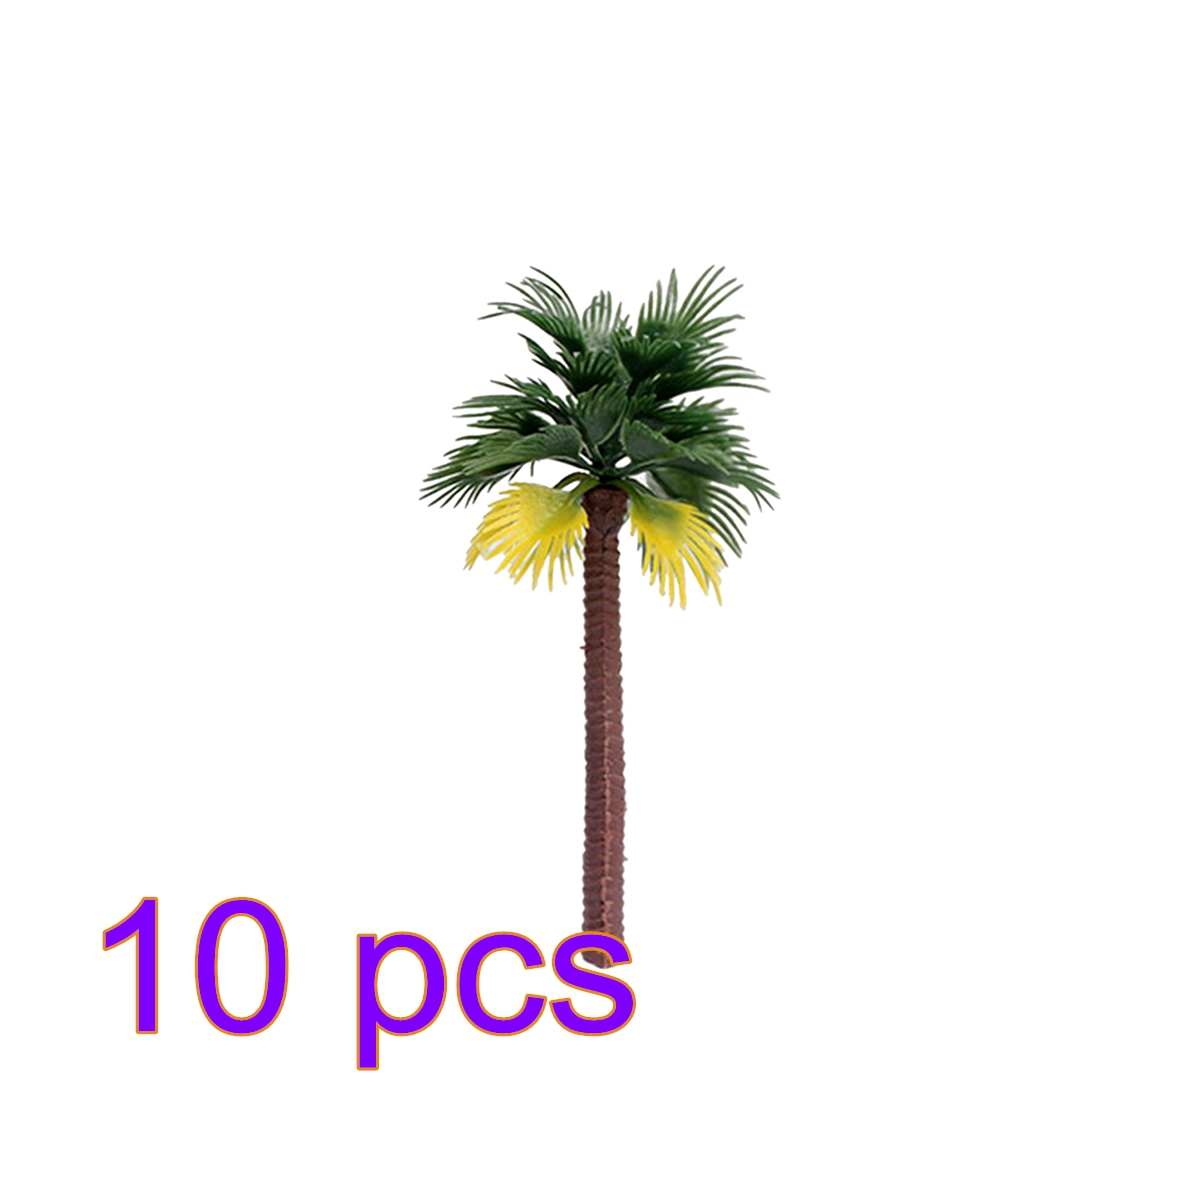 10pcs 7cm Plastic Coconut Palm Tree Train Railroad Architecture Diorama Tree Model Building Accessories 2019 New Arrival